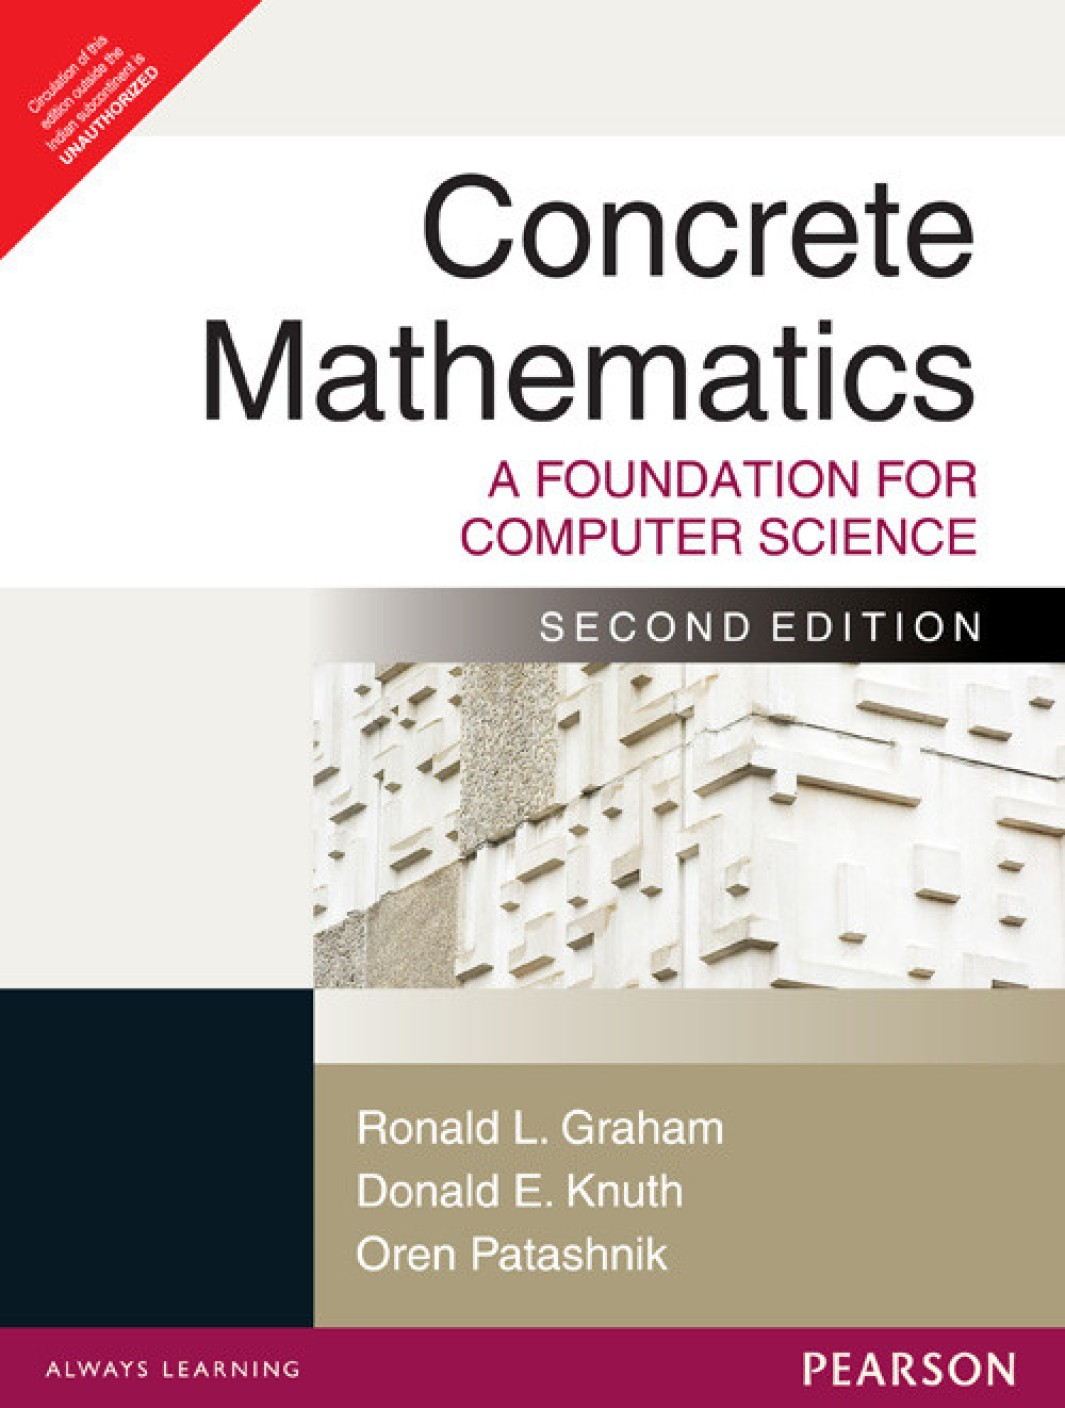 the history and foundation of computer science About the coursethe msc in mathematics and foundations of computer science, run jointly by the mathematical institute and the department of computer science, focuses on the interface between pure mathematics and theoretical computer science.